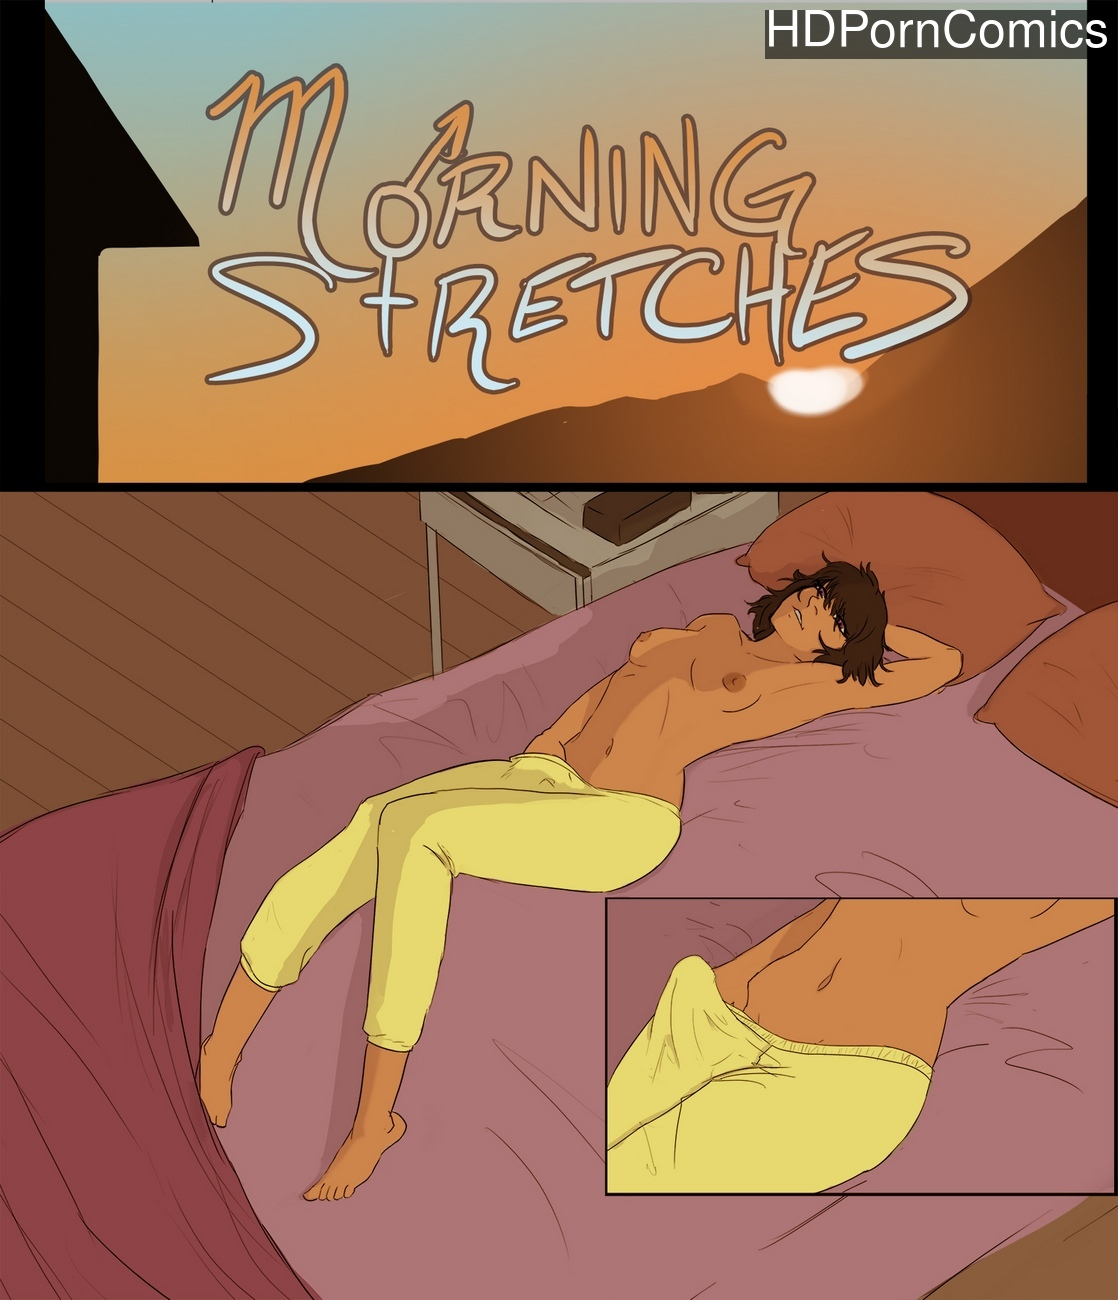 Morning-Stretches 1 free porn comics